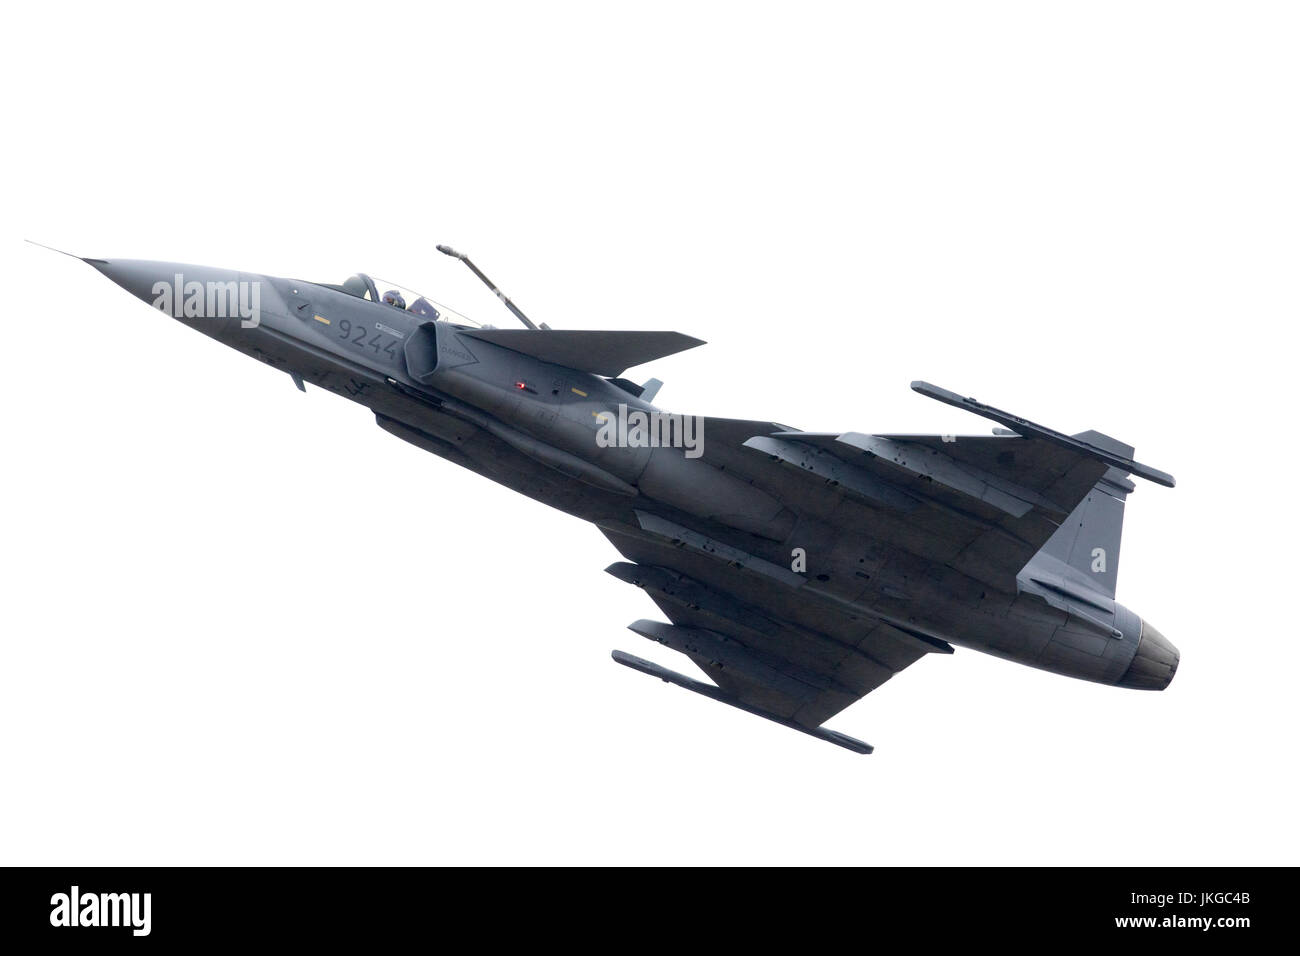 Czech Air Force Saab JAS 39C Gripen 9244  light single engine multirole fighter aircraft by Saab at Royal International - Stock Image